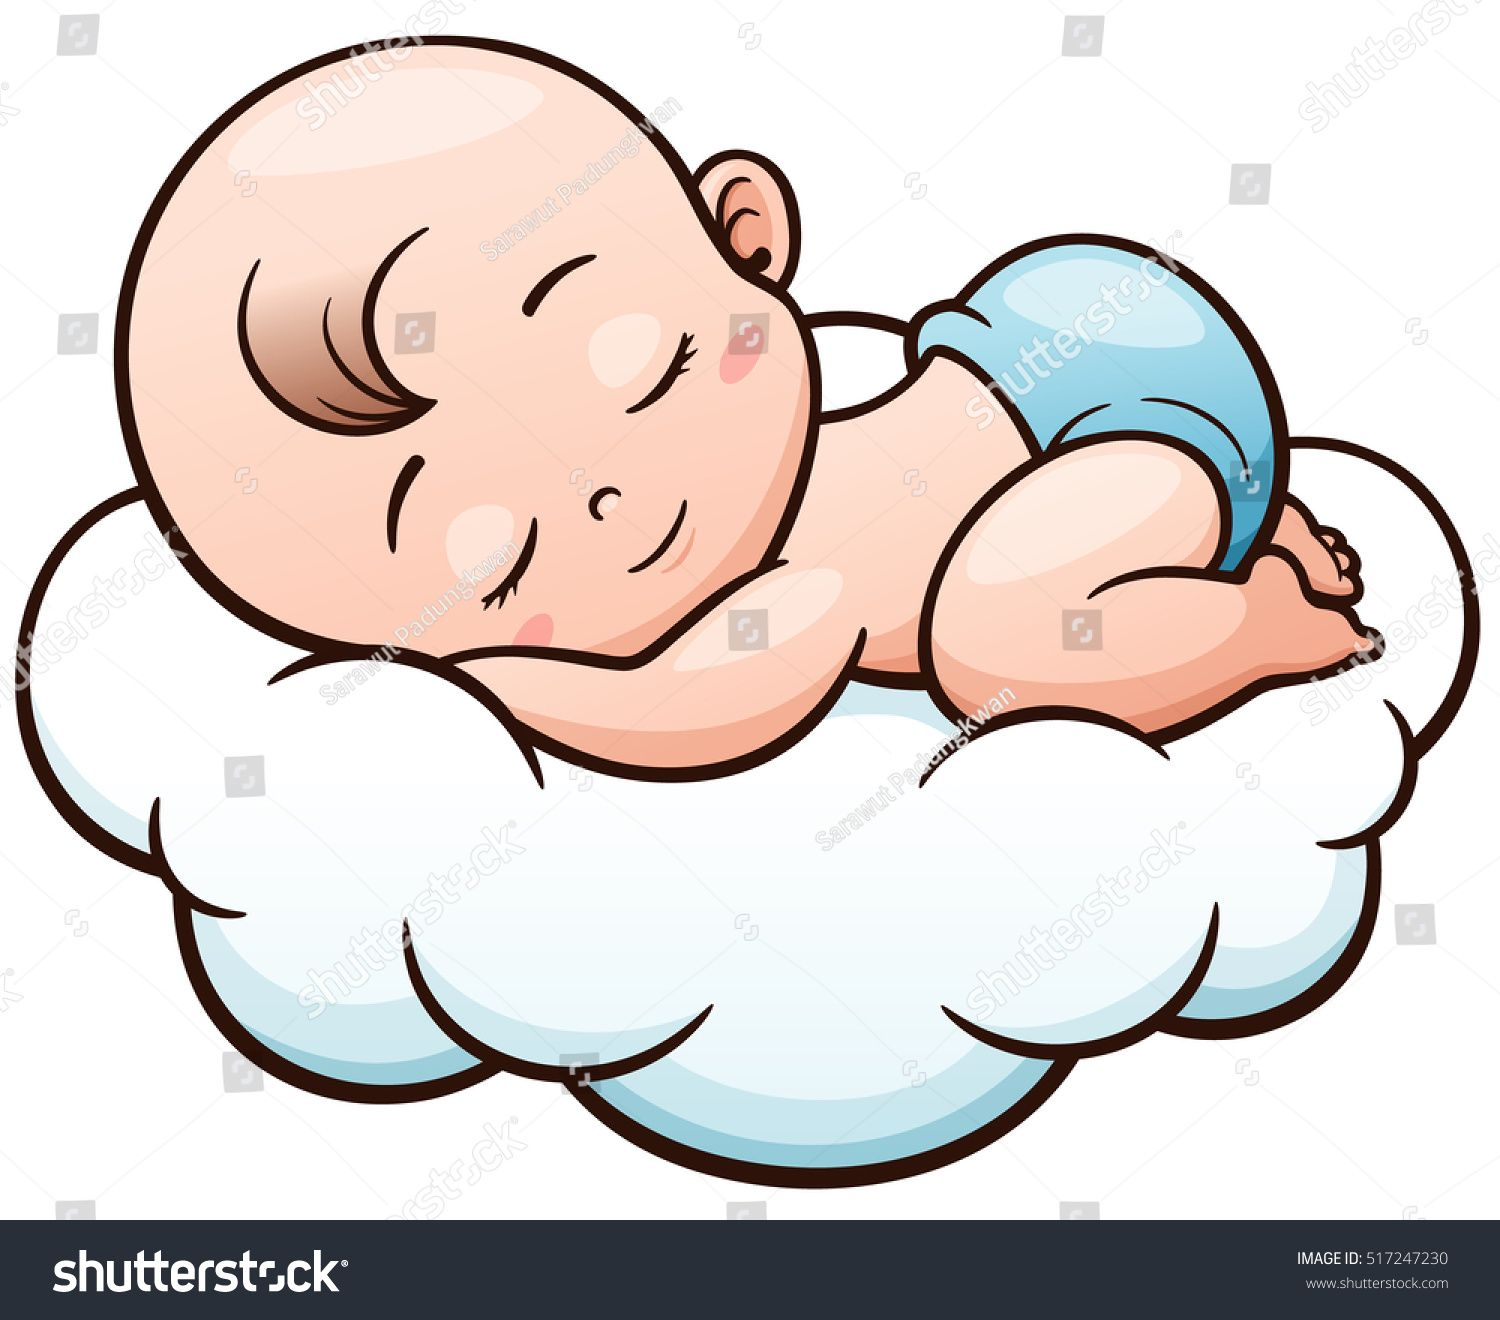 Vector Illustration Of Cartoon Baby Sleeping On A Cloud Baby Cartoon Drawing Baby Drawing Baby Art